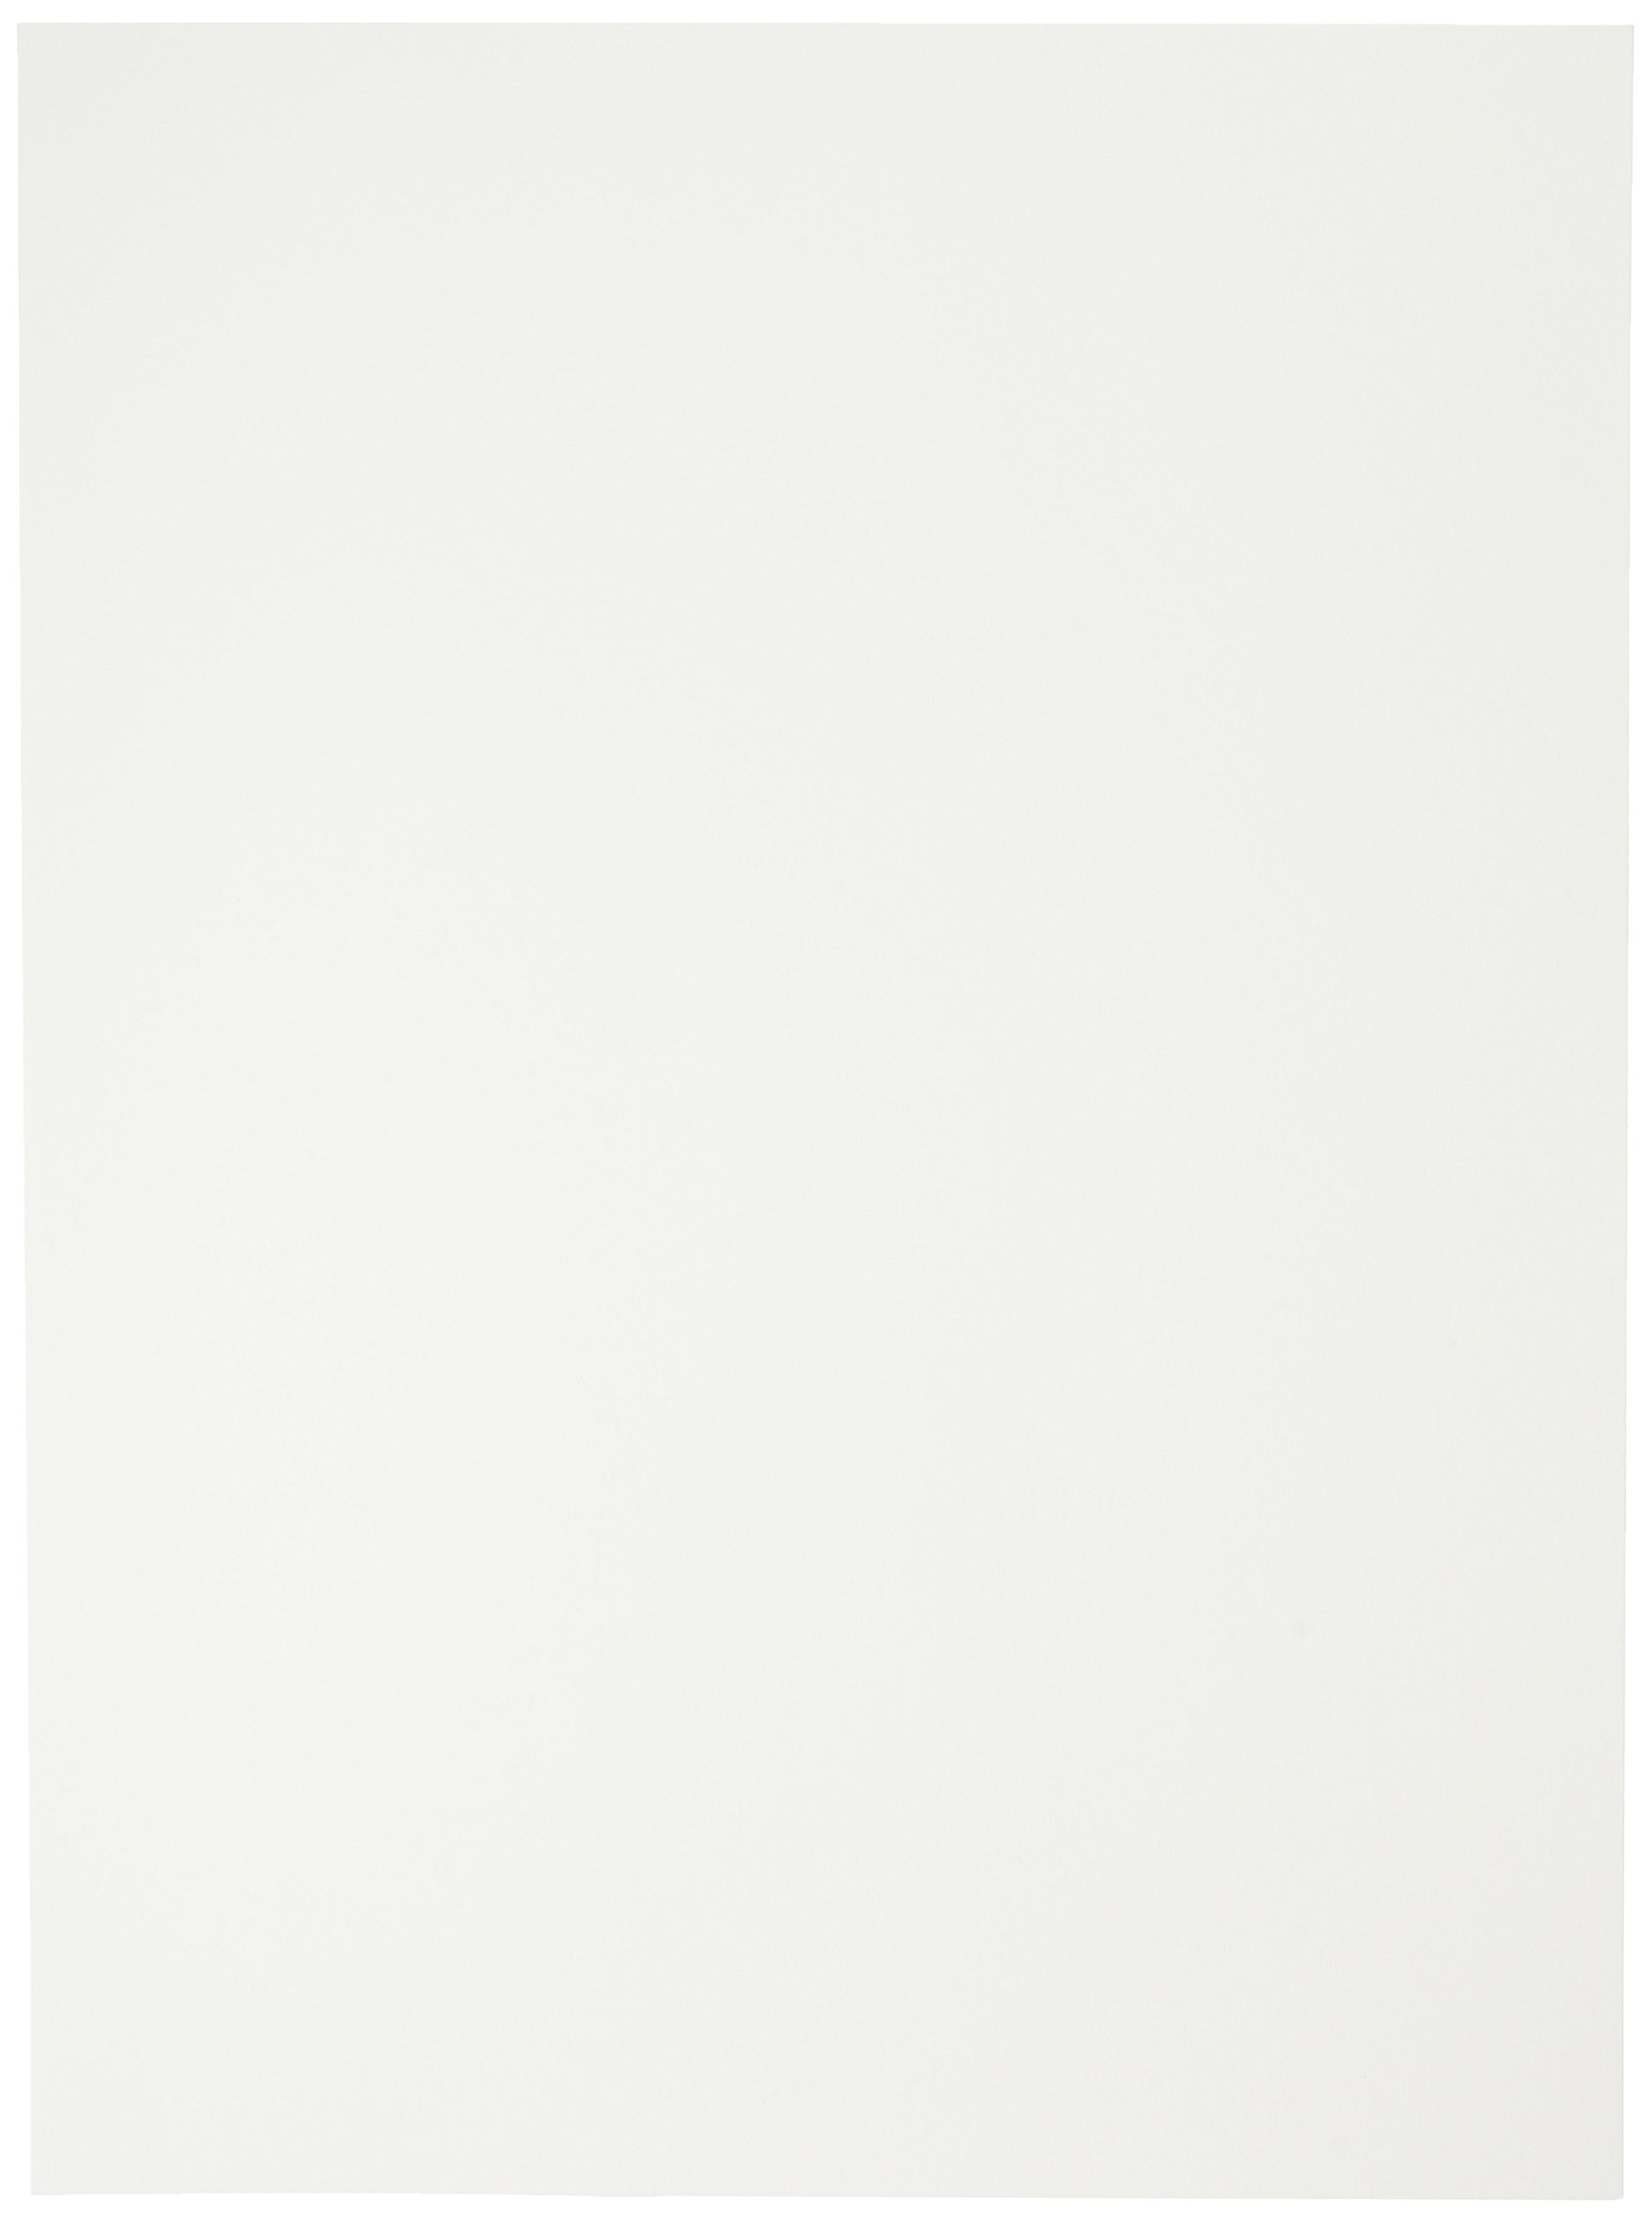 CANSON XL Series Watercolor Paper Bulk Pack for Wet and Dry Media, 90 Pound, 9 x 12 Inch, 500 Sheets, 9''X12'', 0 by Canson